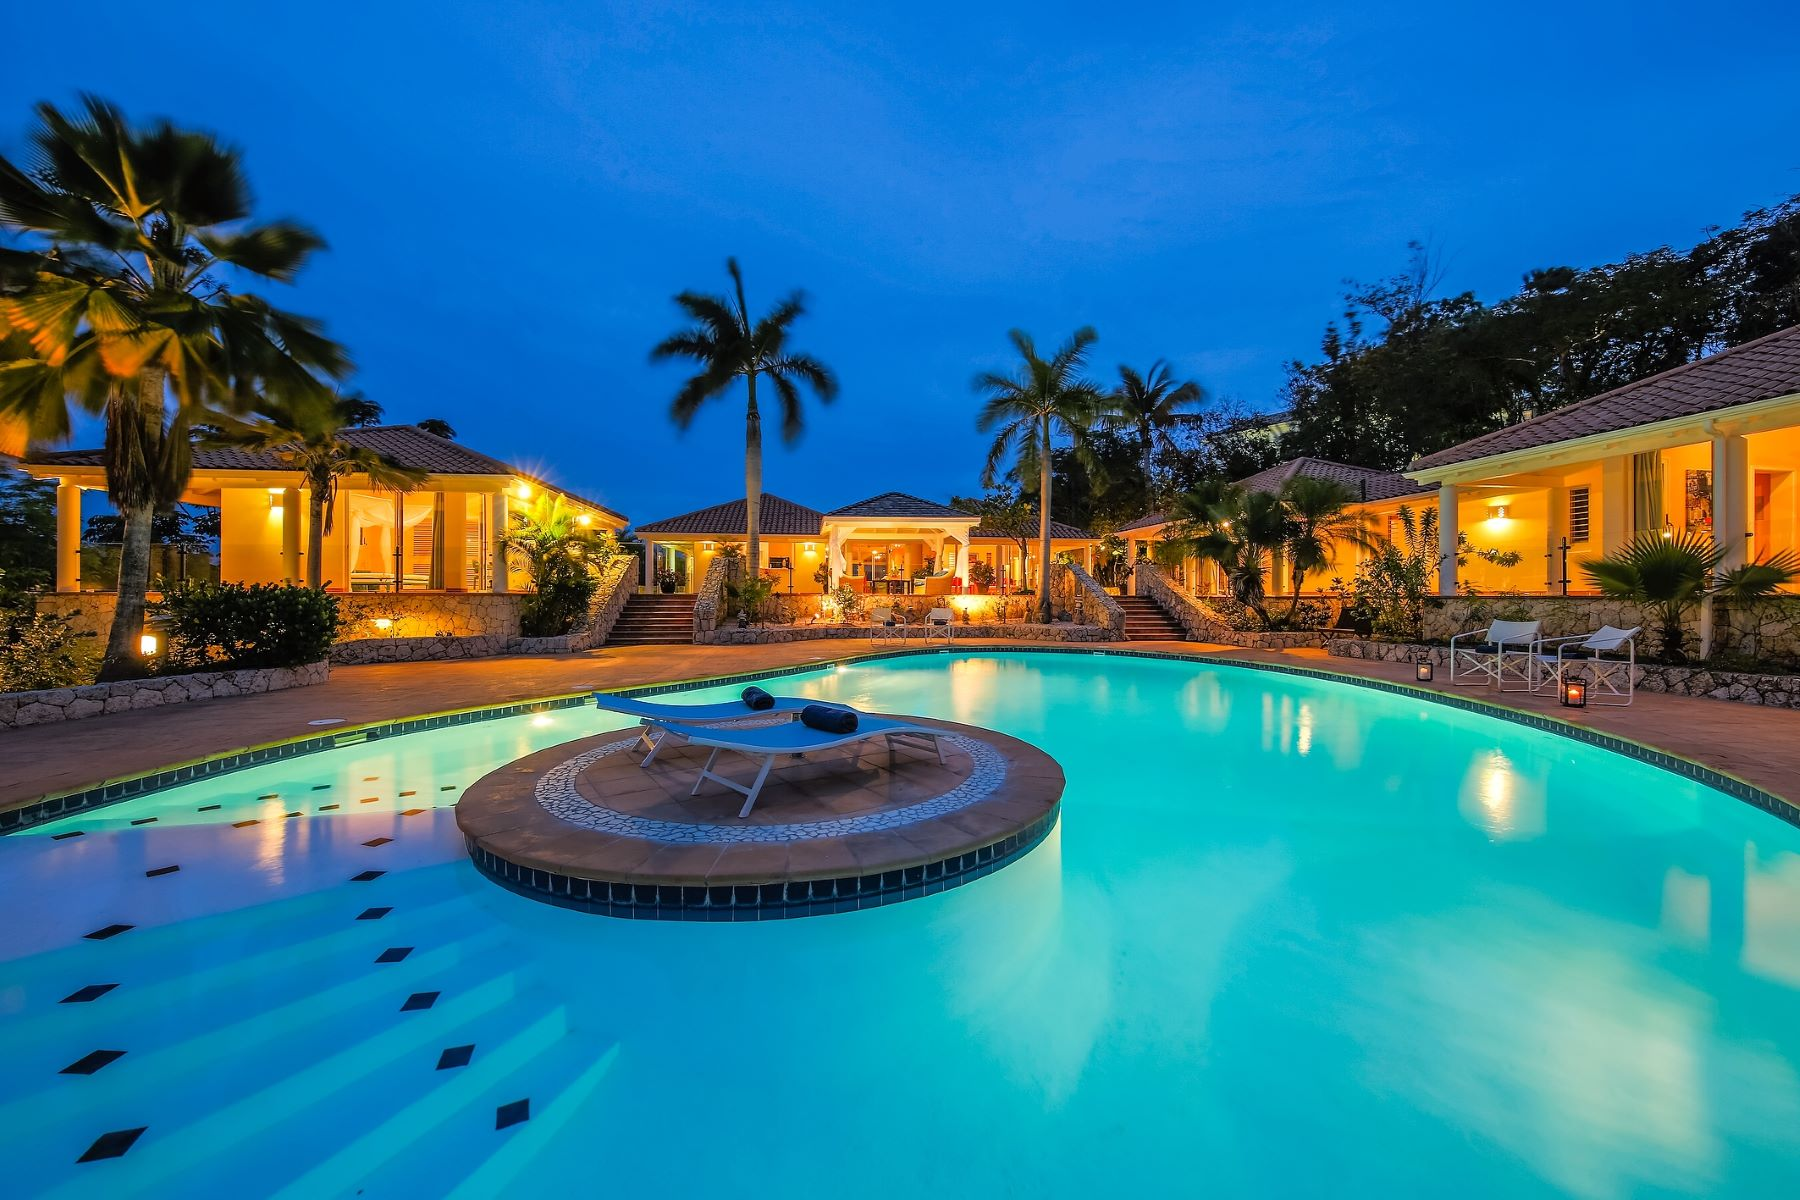 Single Family Home for Sale at Villa Dauphin Terres Basses, Cities In Saint Martin 97150 St. Martin